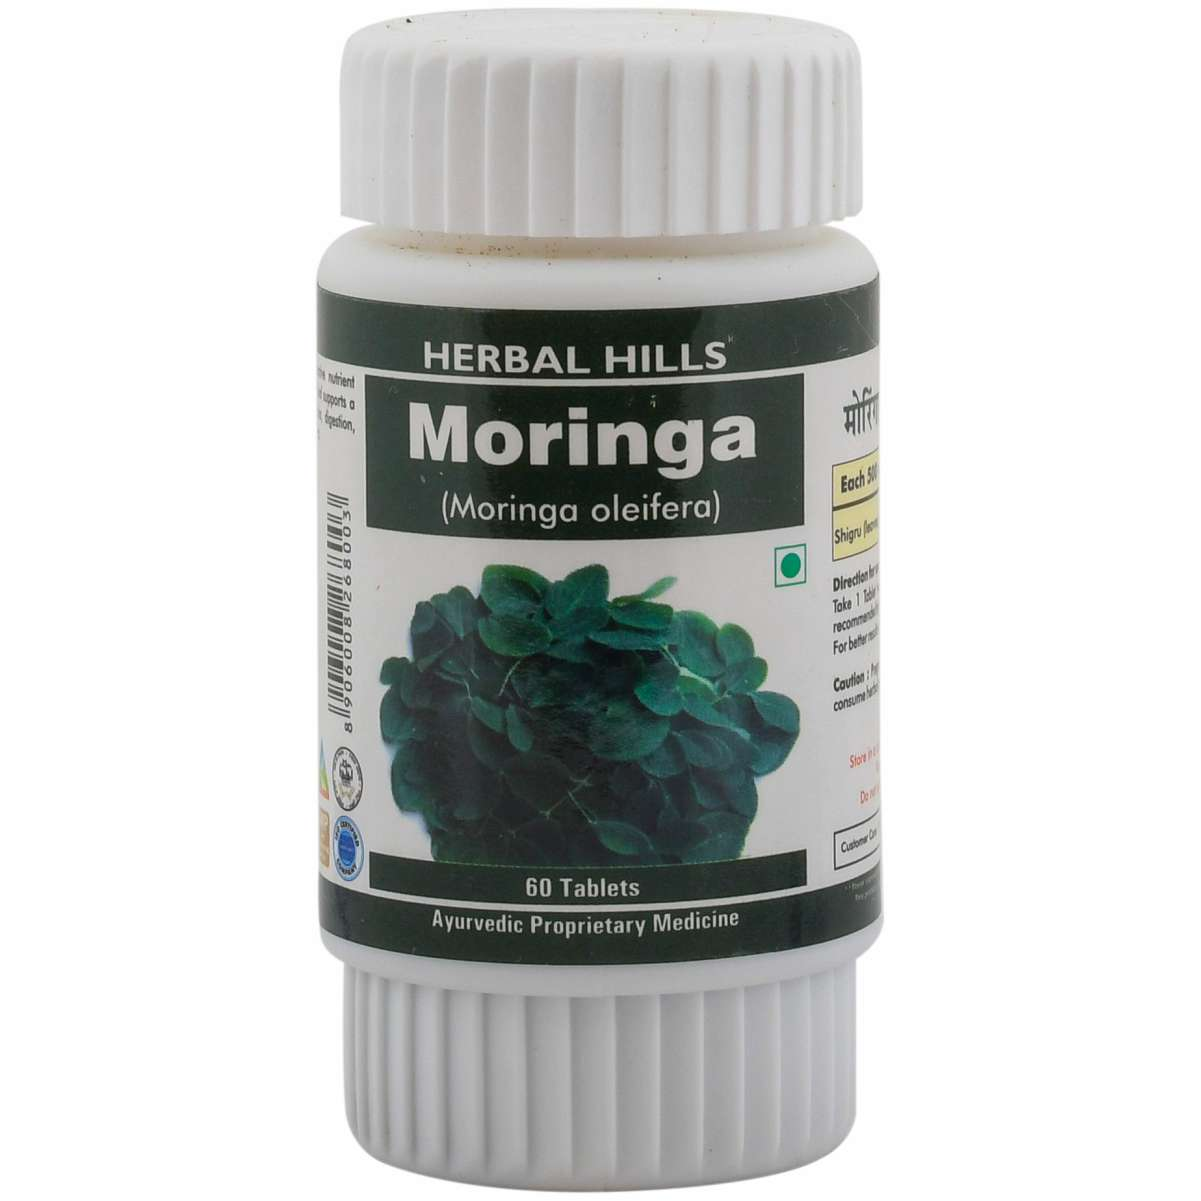 Herbal Hills Moringa 60 Tablets Moringa leaf / Shugru / Drumstick leaf (Moringa Oleifera) 500 mg Powderin a tablets